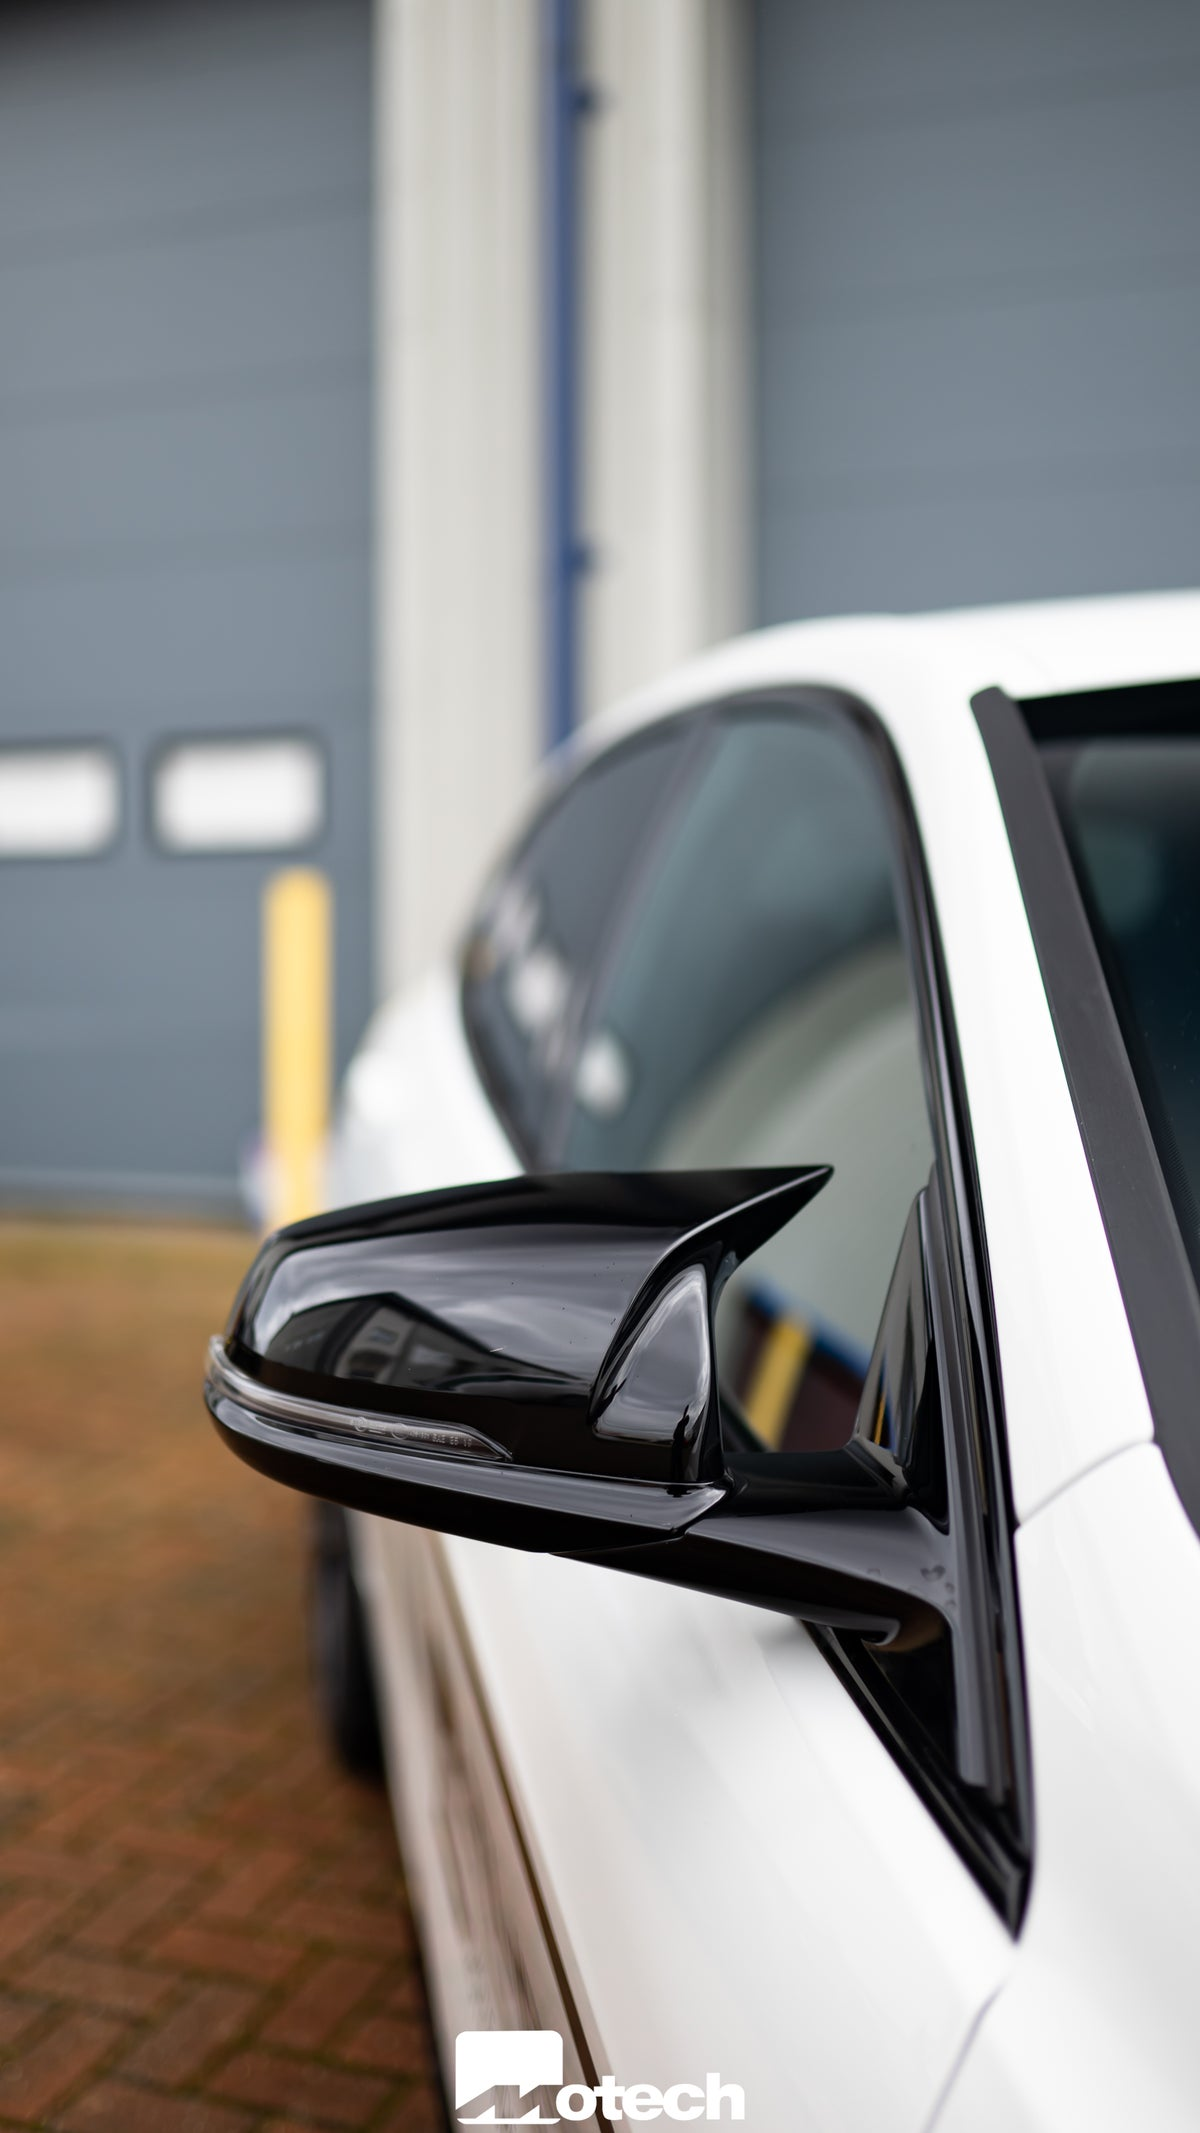 Image of BMW M135i xDrive M Style Gloss Black Mirror Covers (F40)